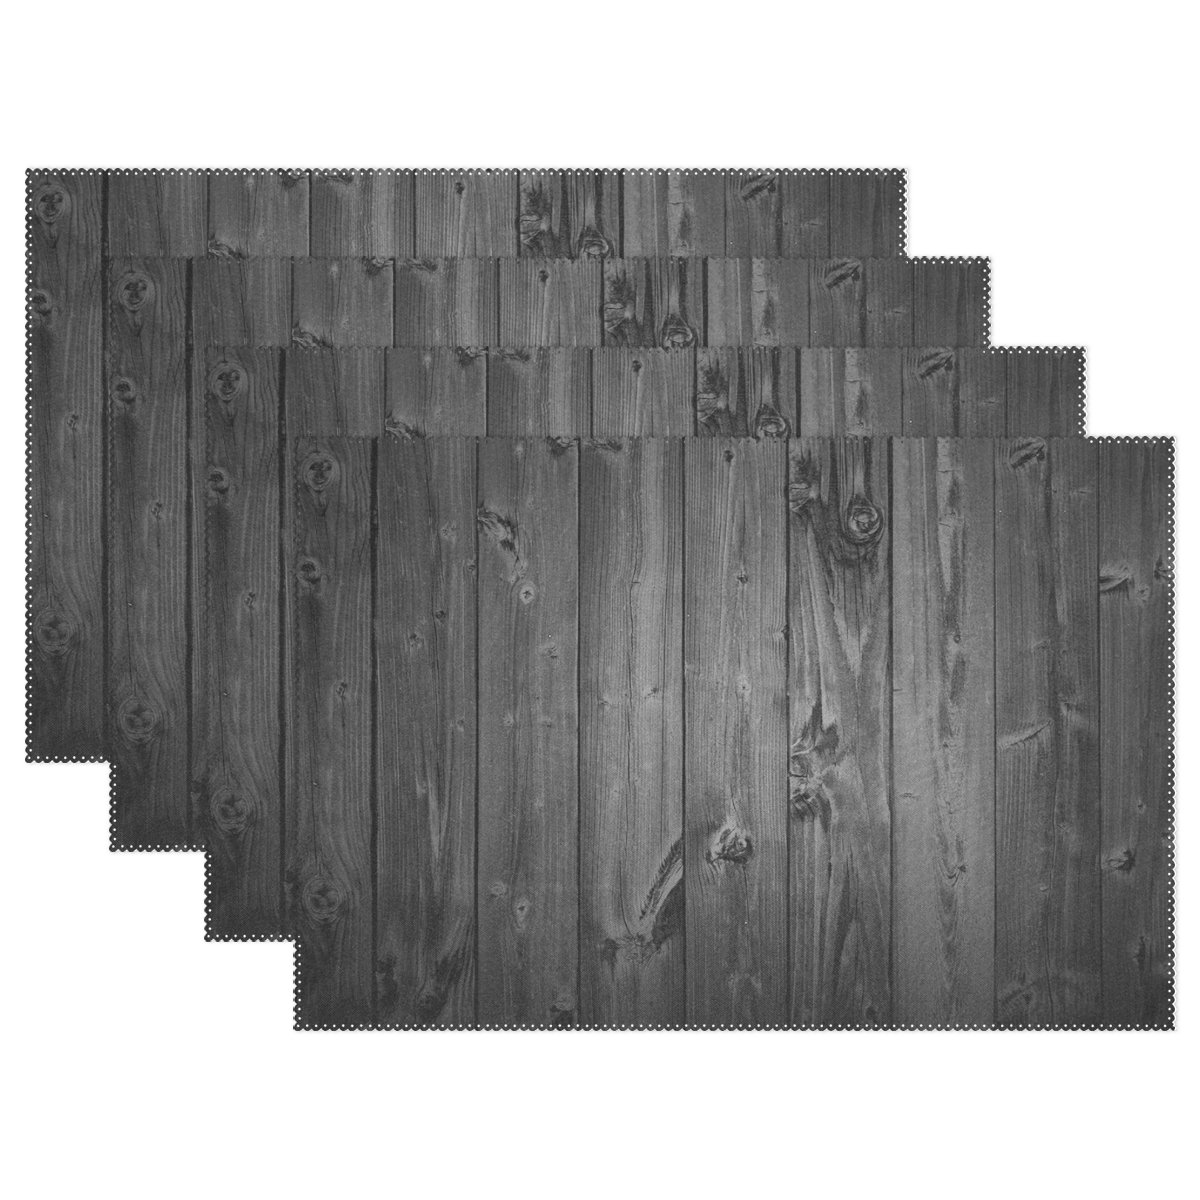 AIDEESS Custom Floor Heat-resistant Placemat Table Mat, Rustic Old Barn Wood Pattern Polyester Placemats Non-slip Insulation Mats 12''x18'' by AIDEESS (Image #1)